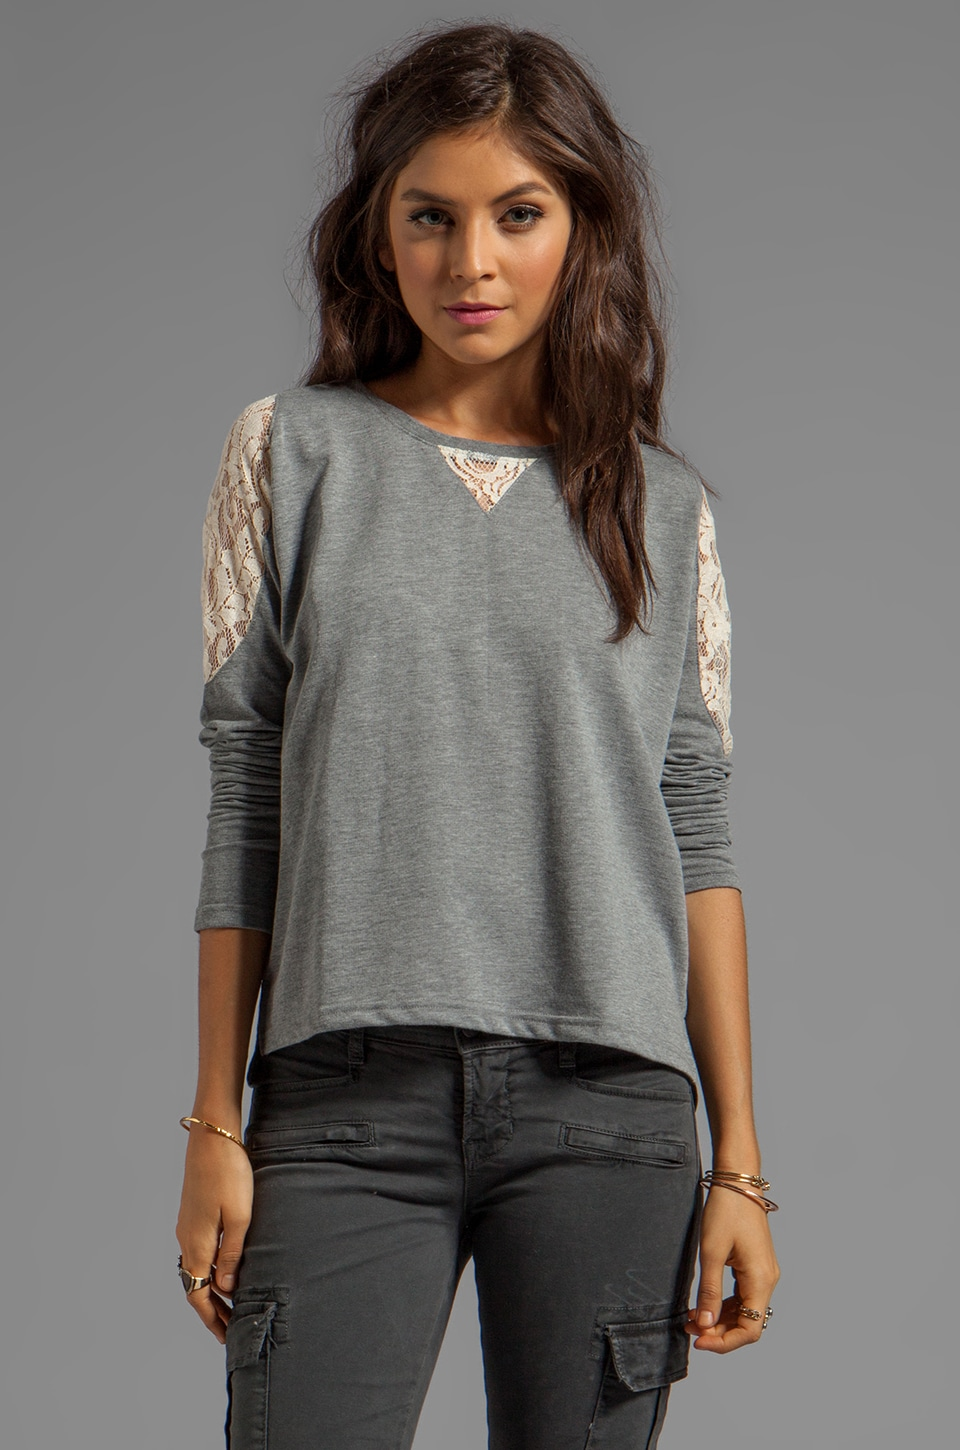 BB Dakota Costello Heather French Terry Sweater w. Lace in Light Heather Grey